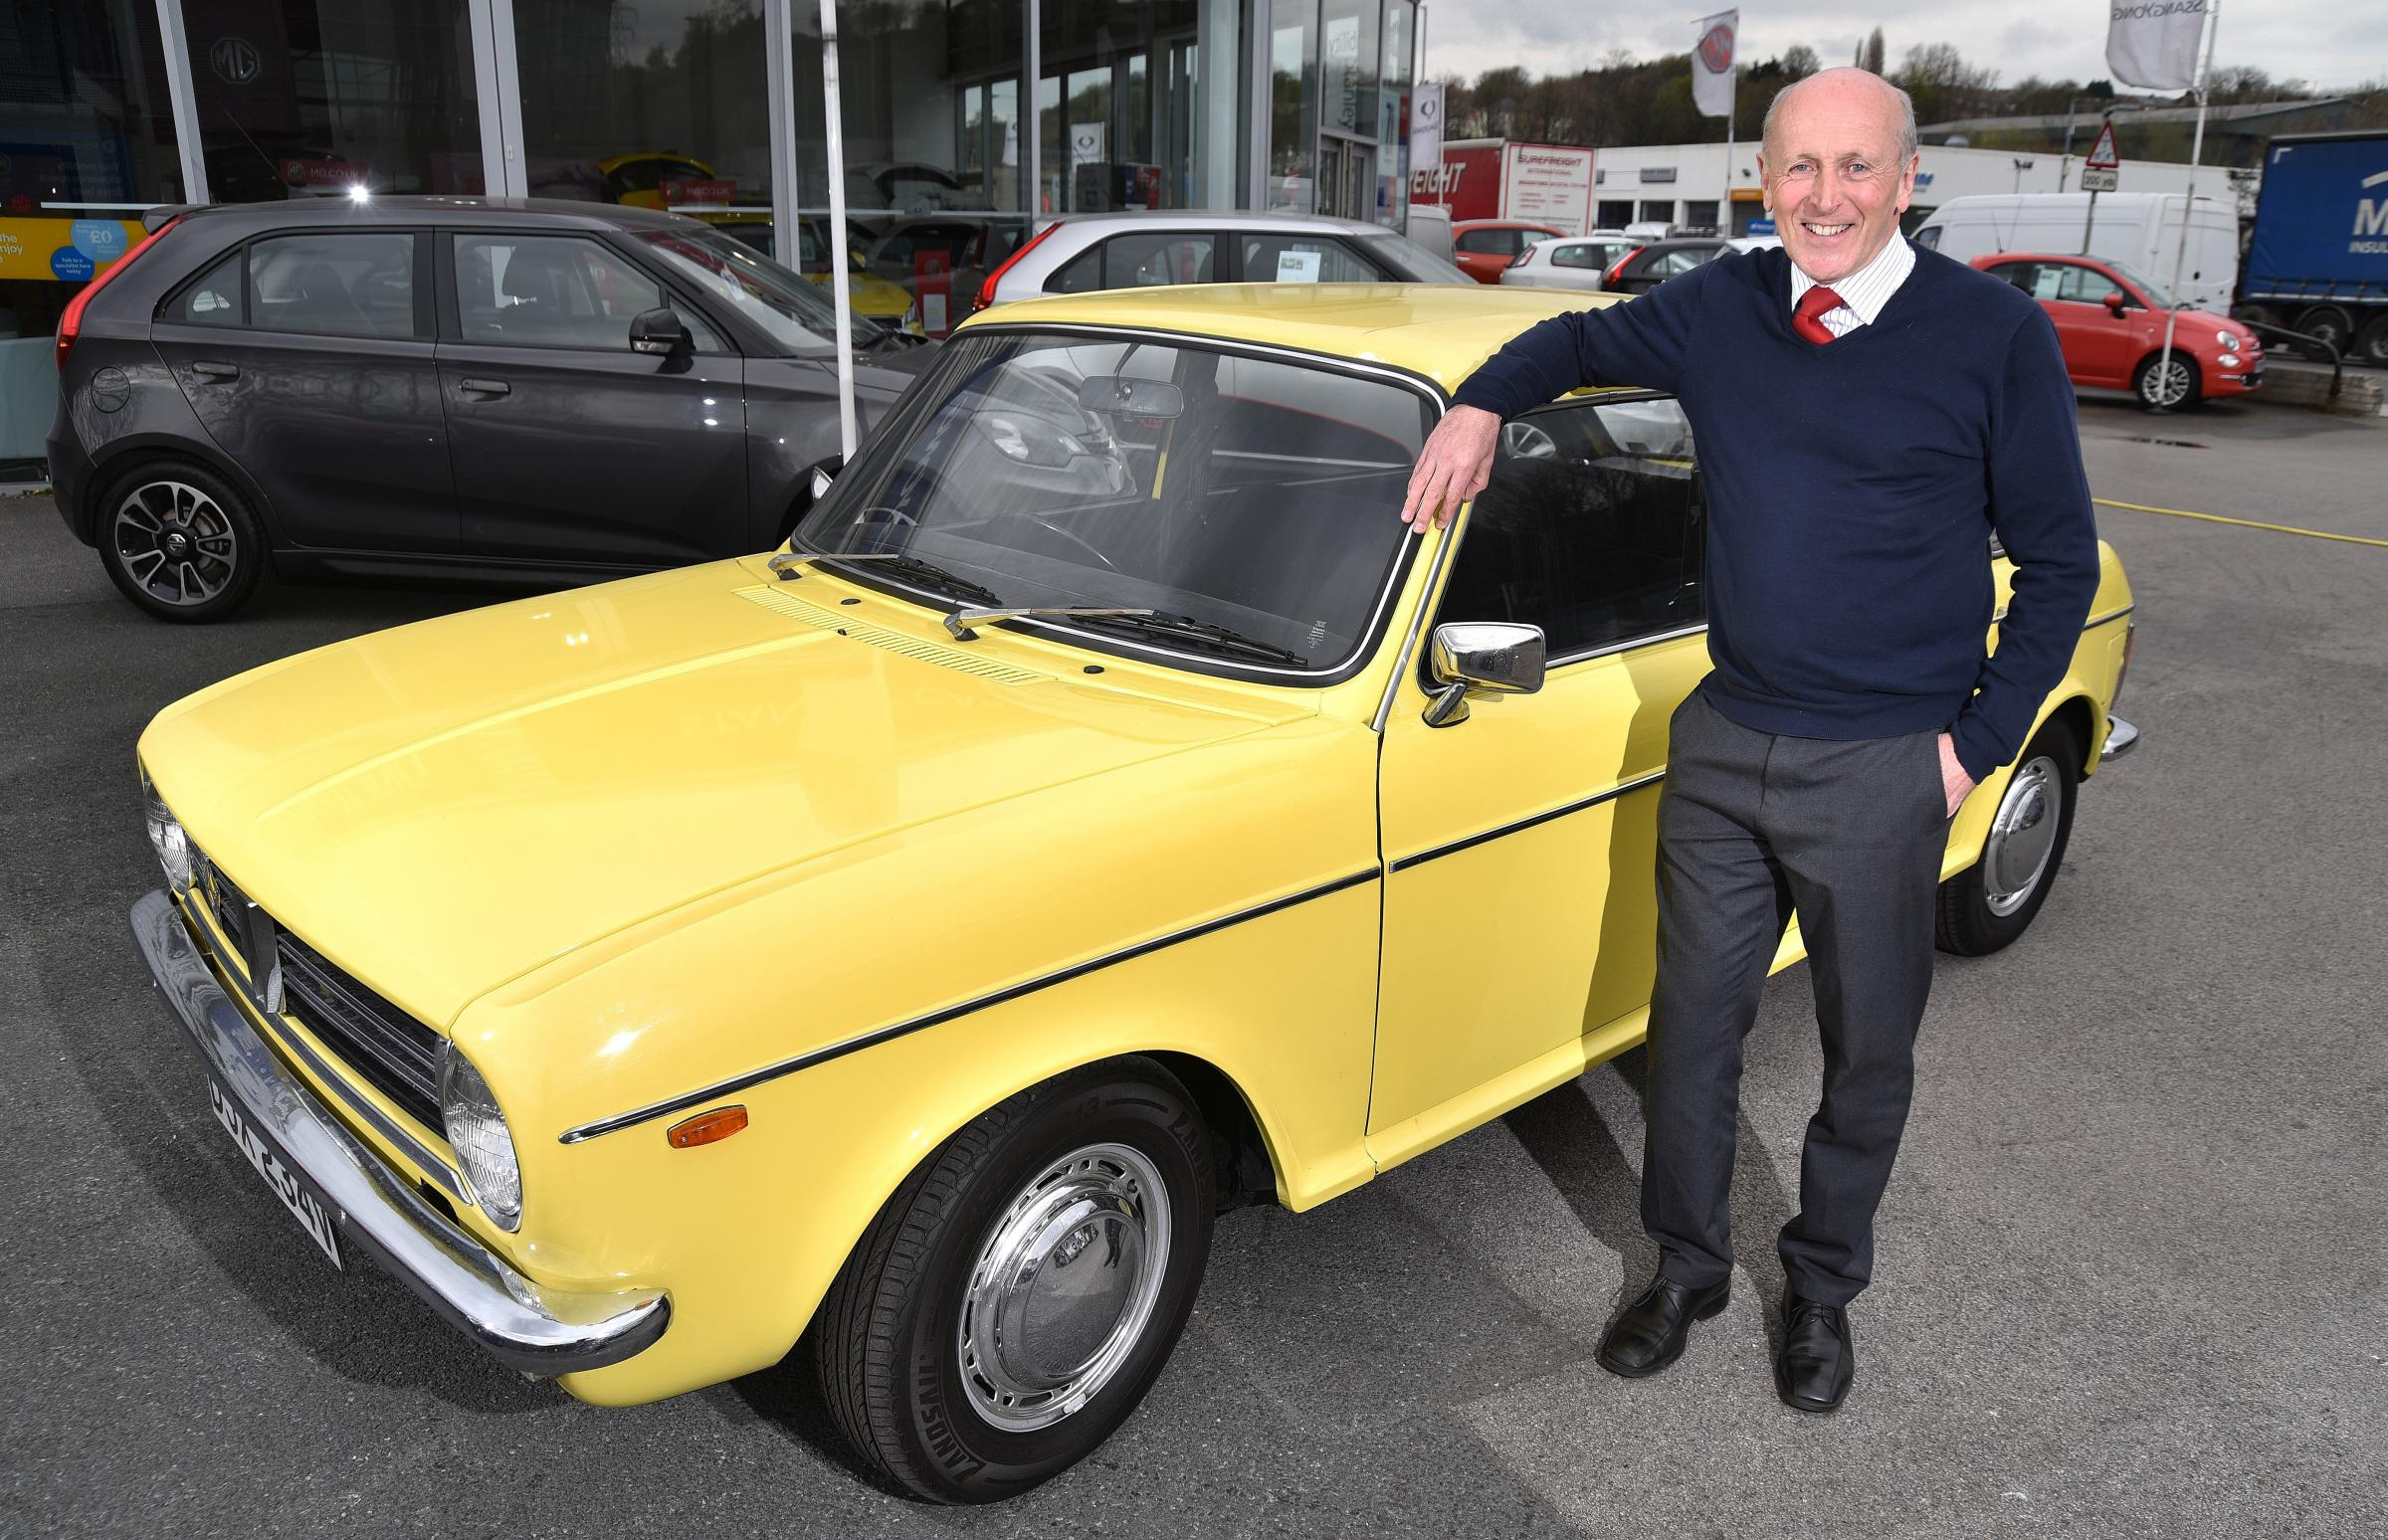 Bradford car expert saves old friend's Austin in fitting tribute